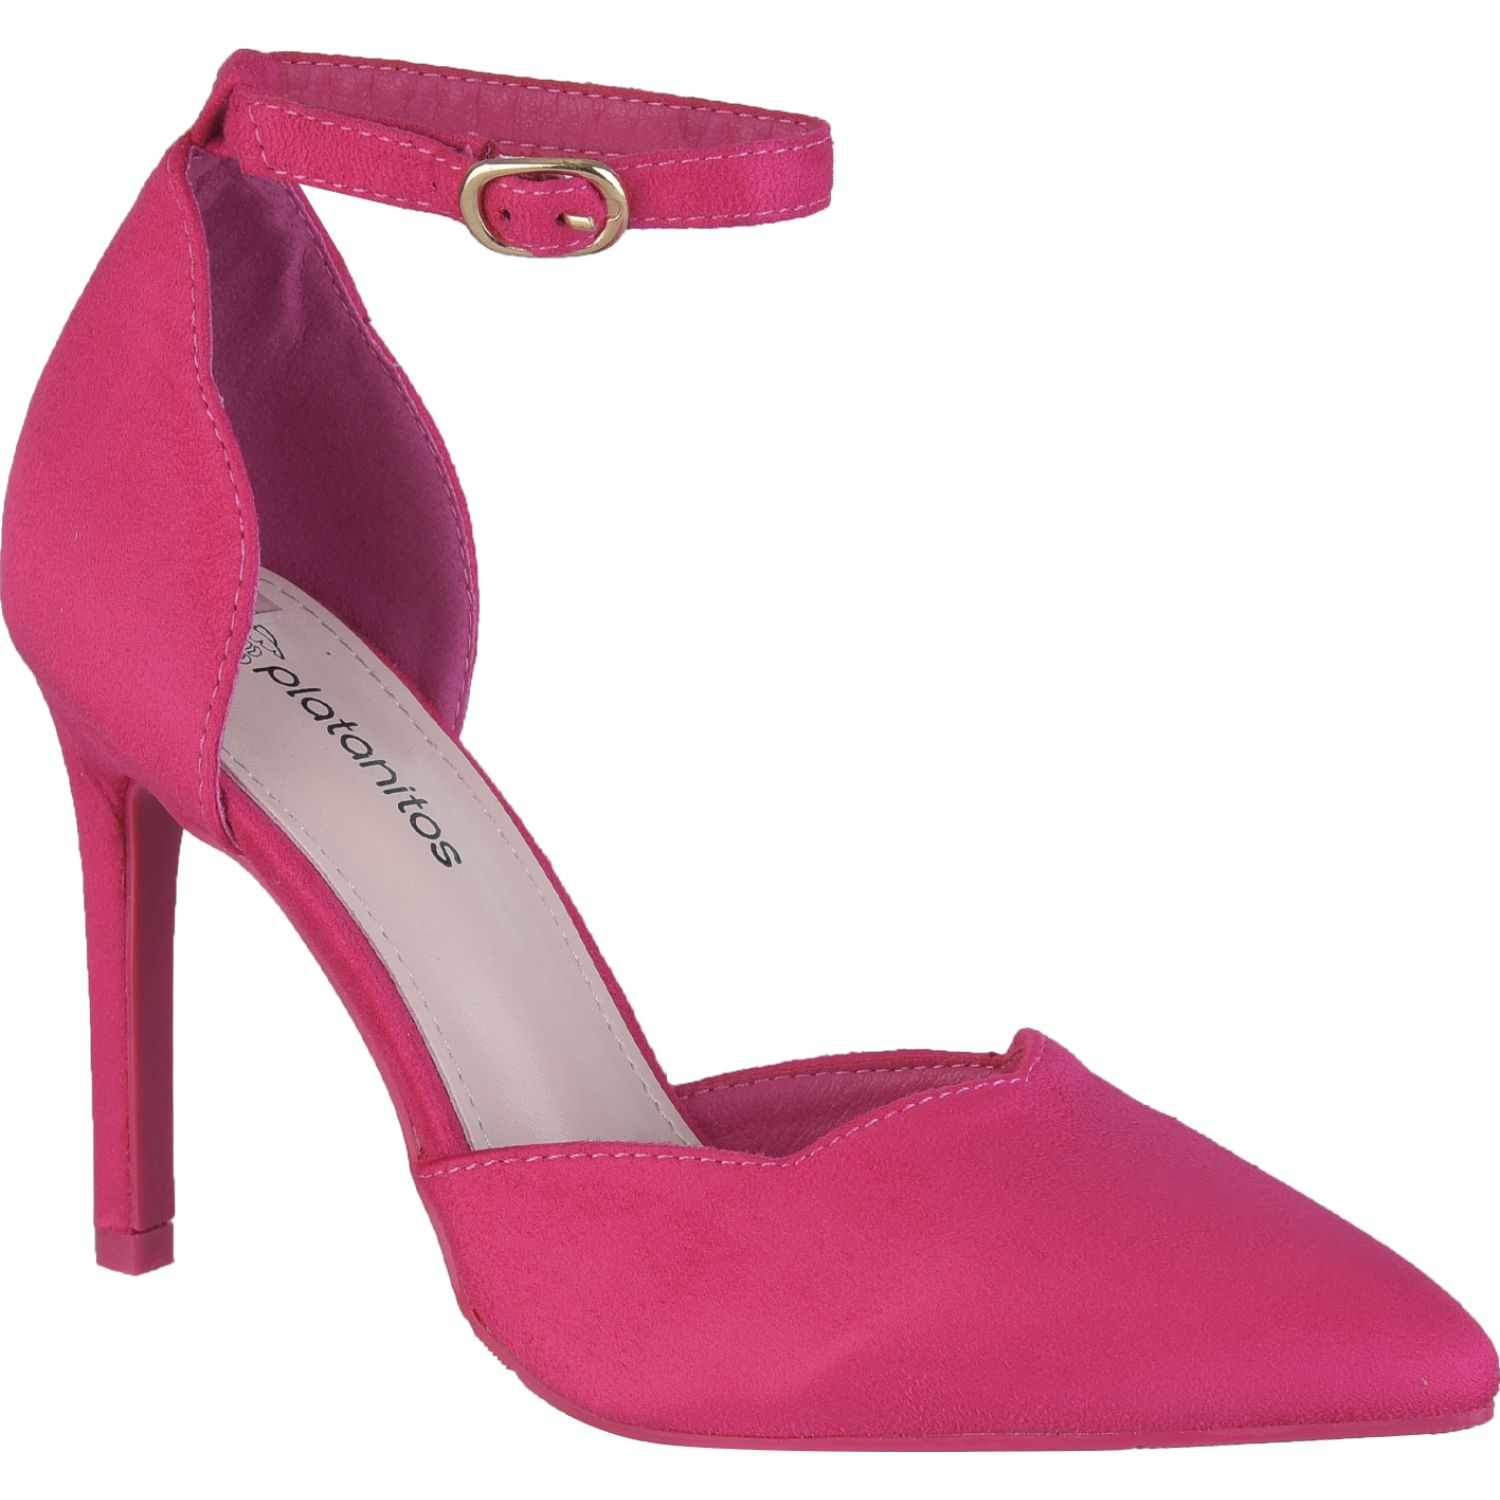 Platanitos cv 1316 Fucsia Estiletos y Pumps